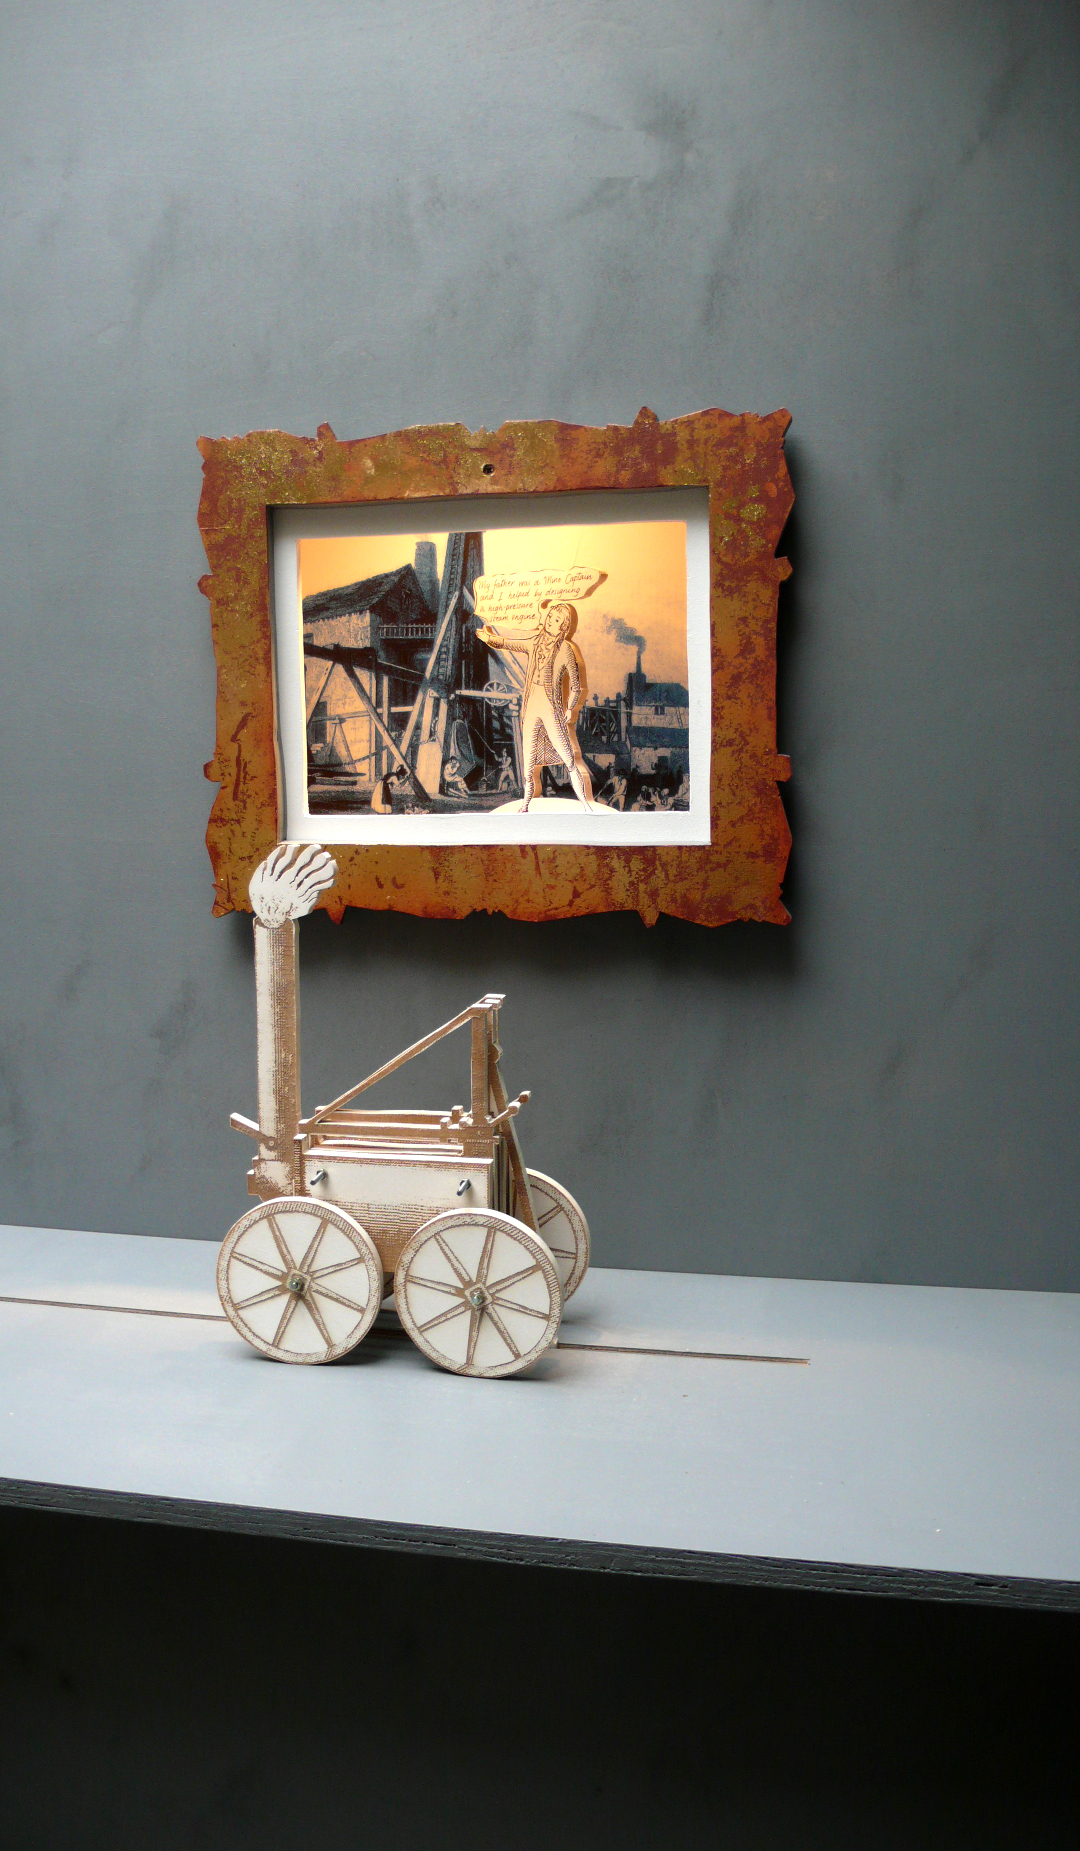 Trevithick  Interacative Installation exploring the life and legacy of Richard Trevithick